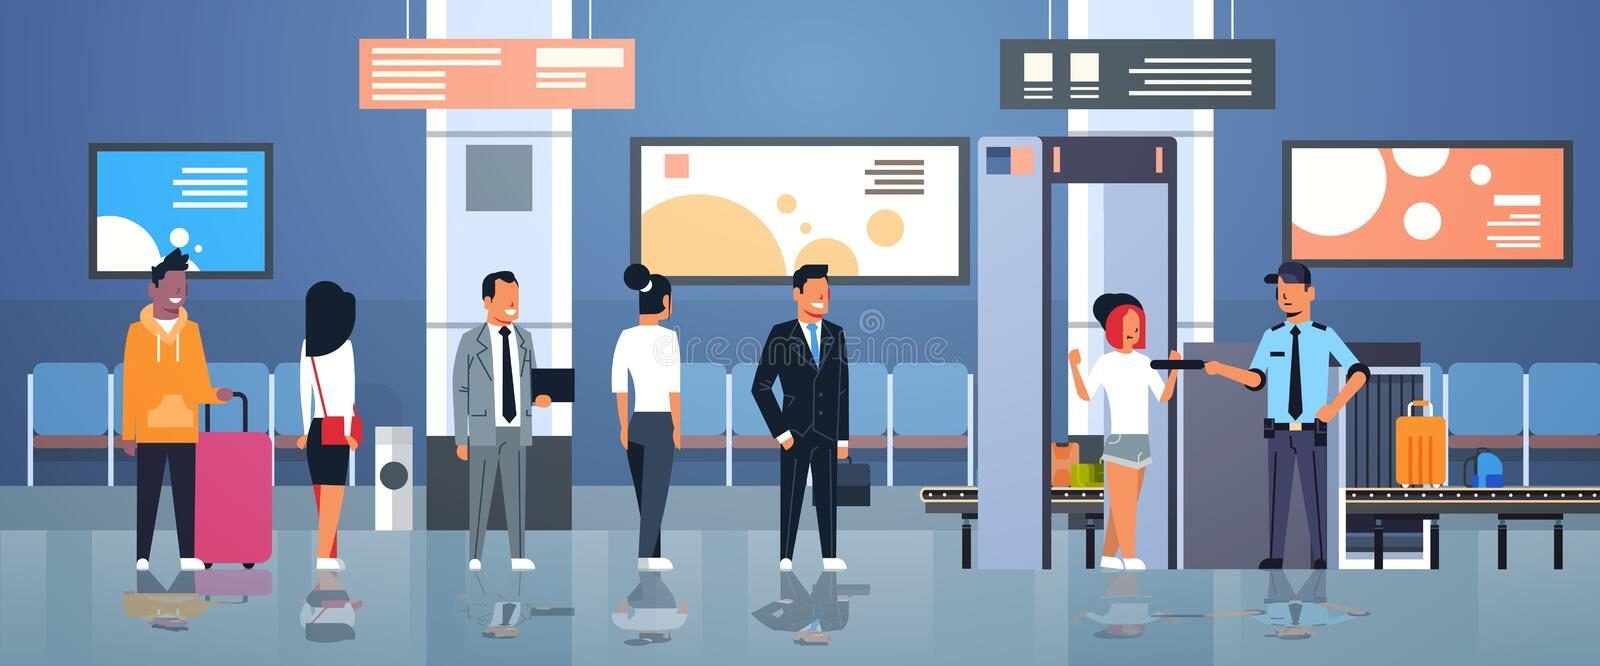 Police officer checking passengers and luggage at metal detector x-ray gate full body scanner airport security check. Concept department terminal interior flat stock illustration